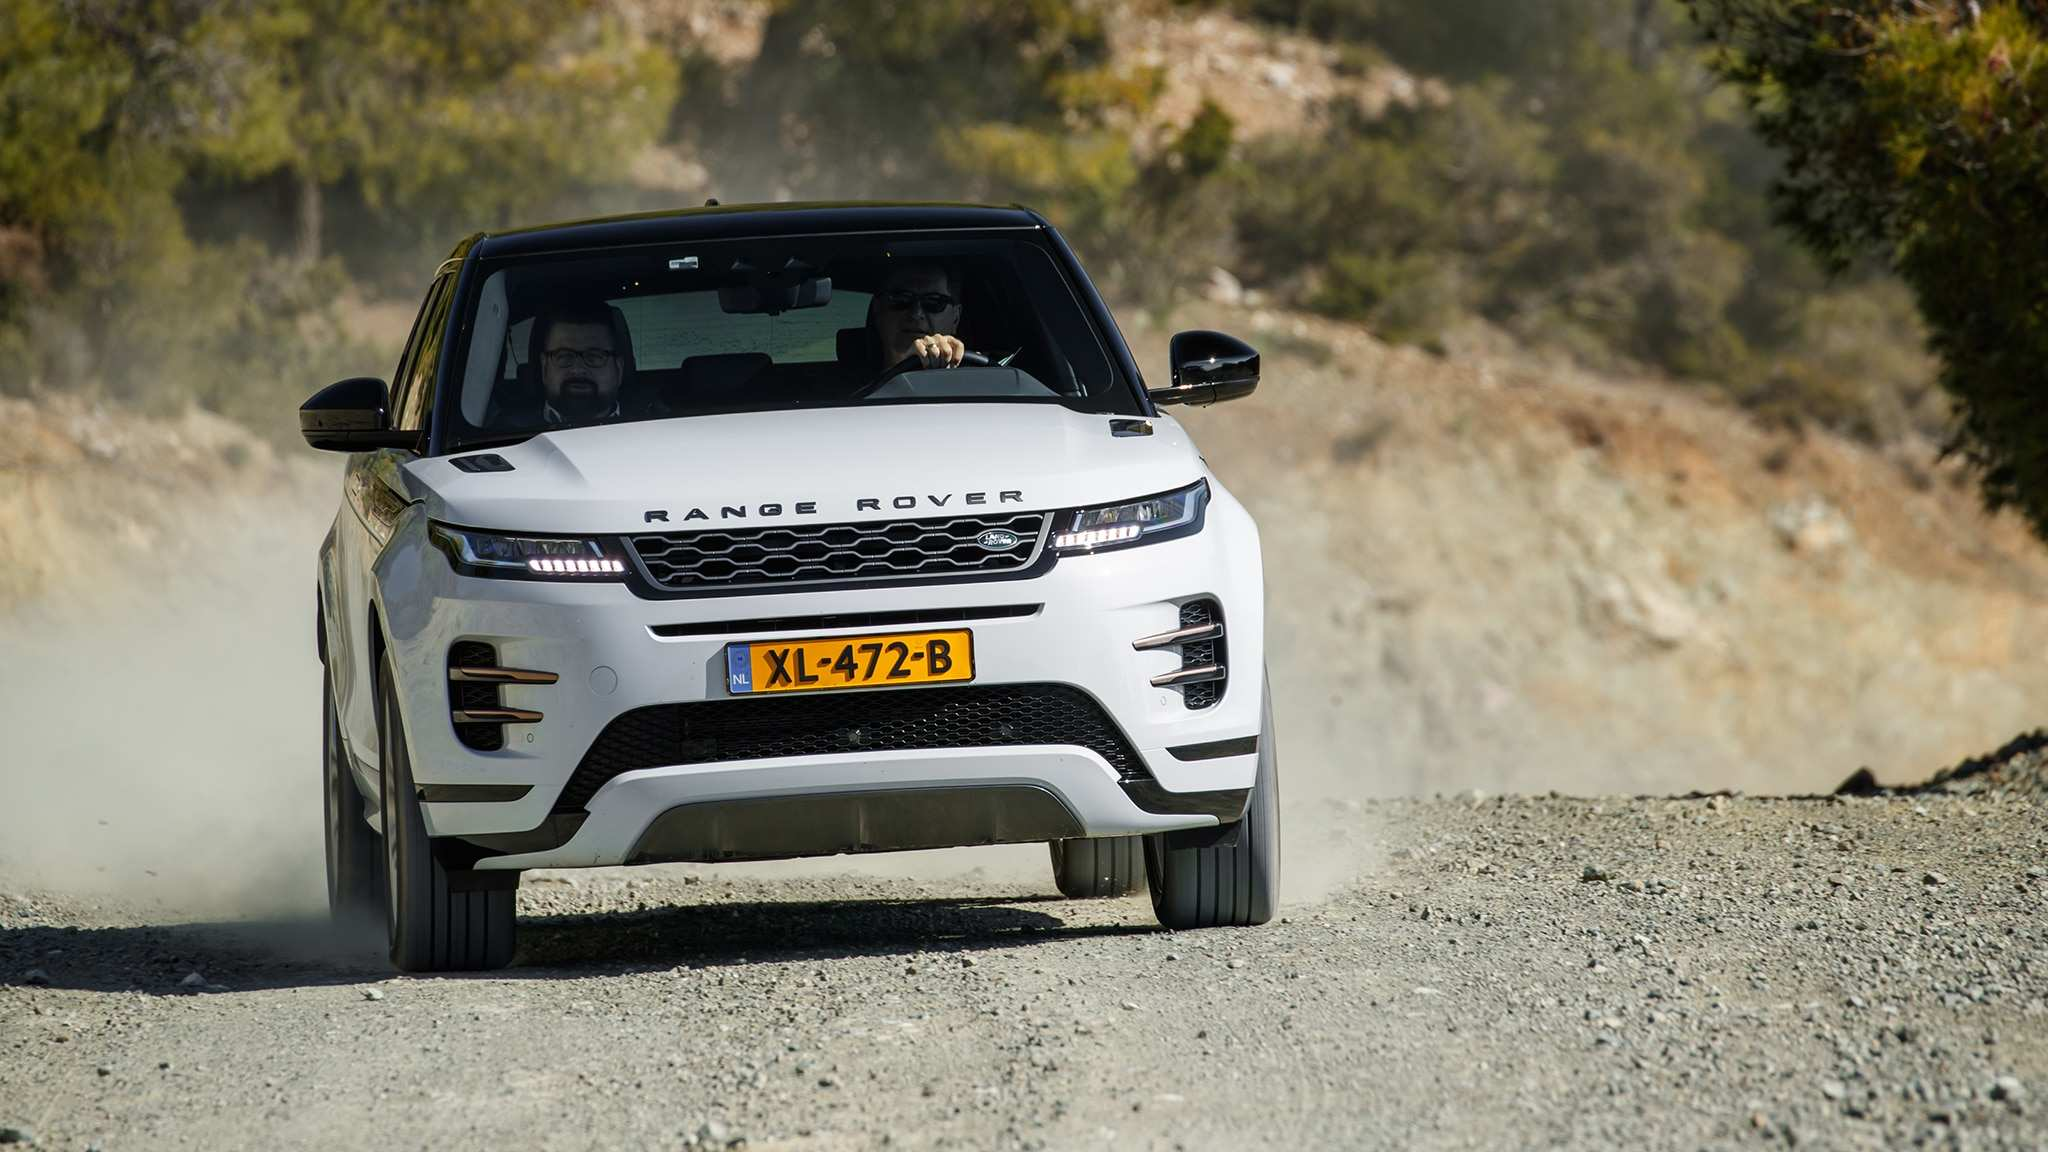 90 The Best 2020 Range Rover Evoque Xl Configurations